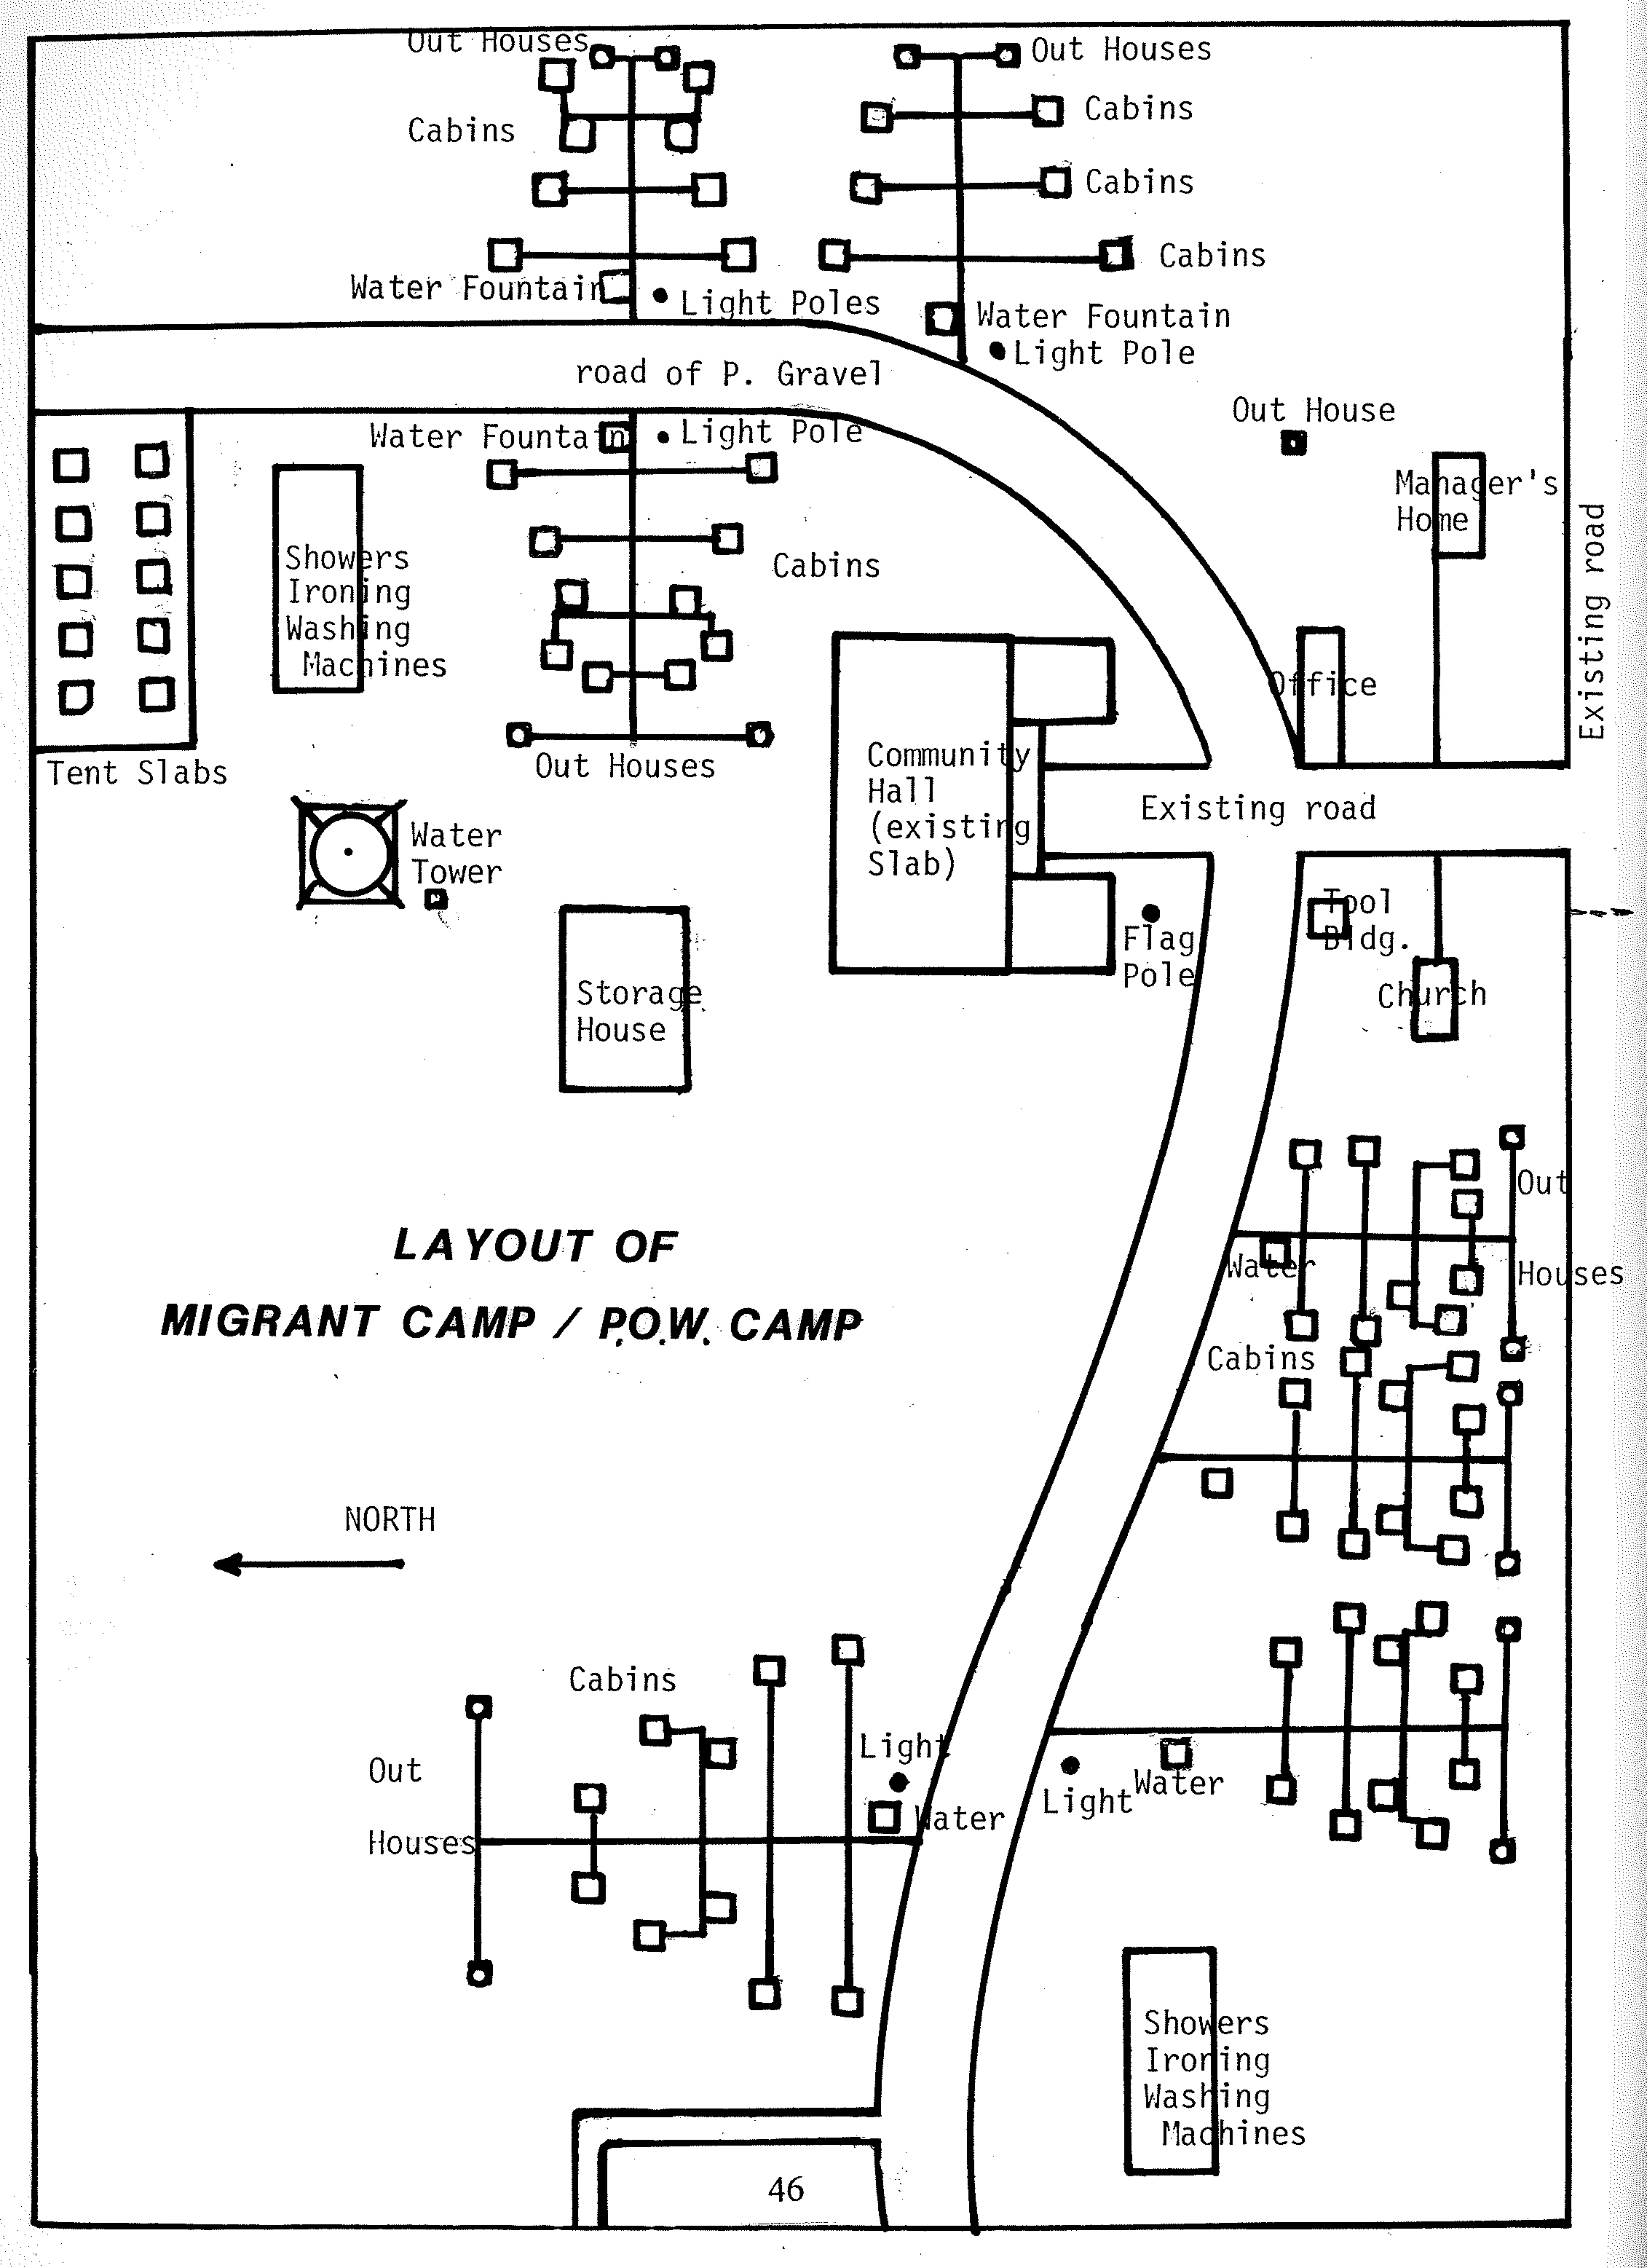 This is the original site layout of the Princeton POW Camp, which was originally constructed as a migrant labor worker camp. It was easy to convert because it was already equipped with bunks to properly house a large number of people.